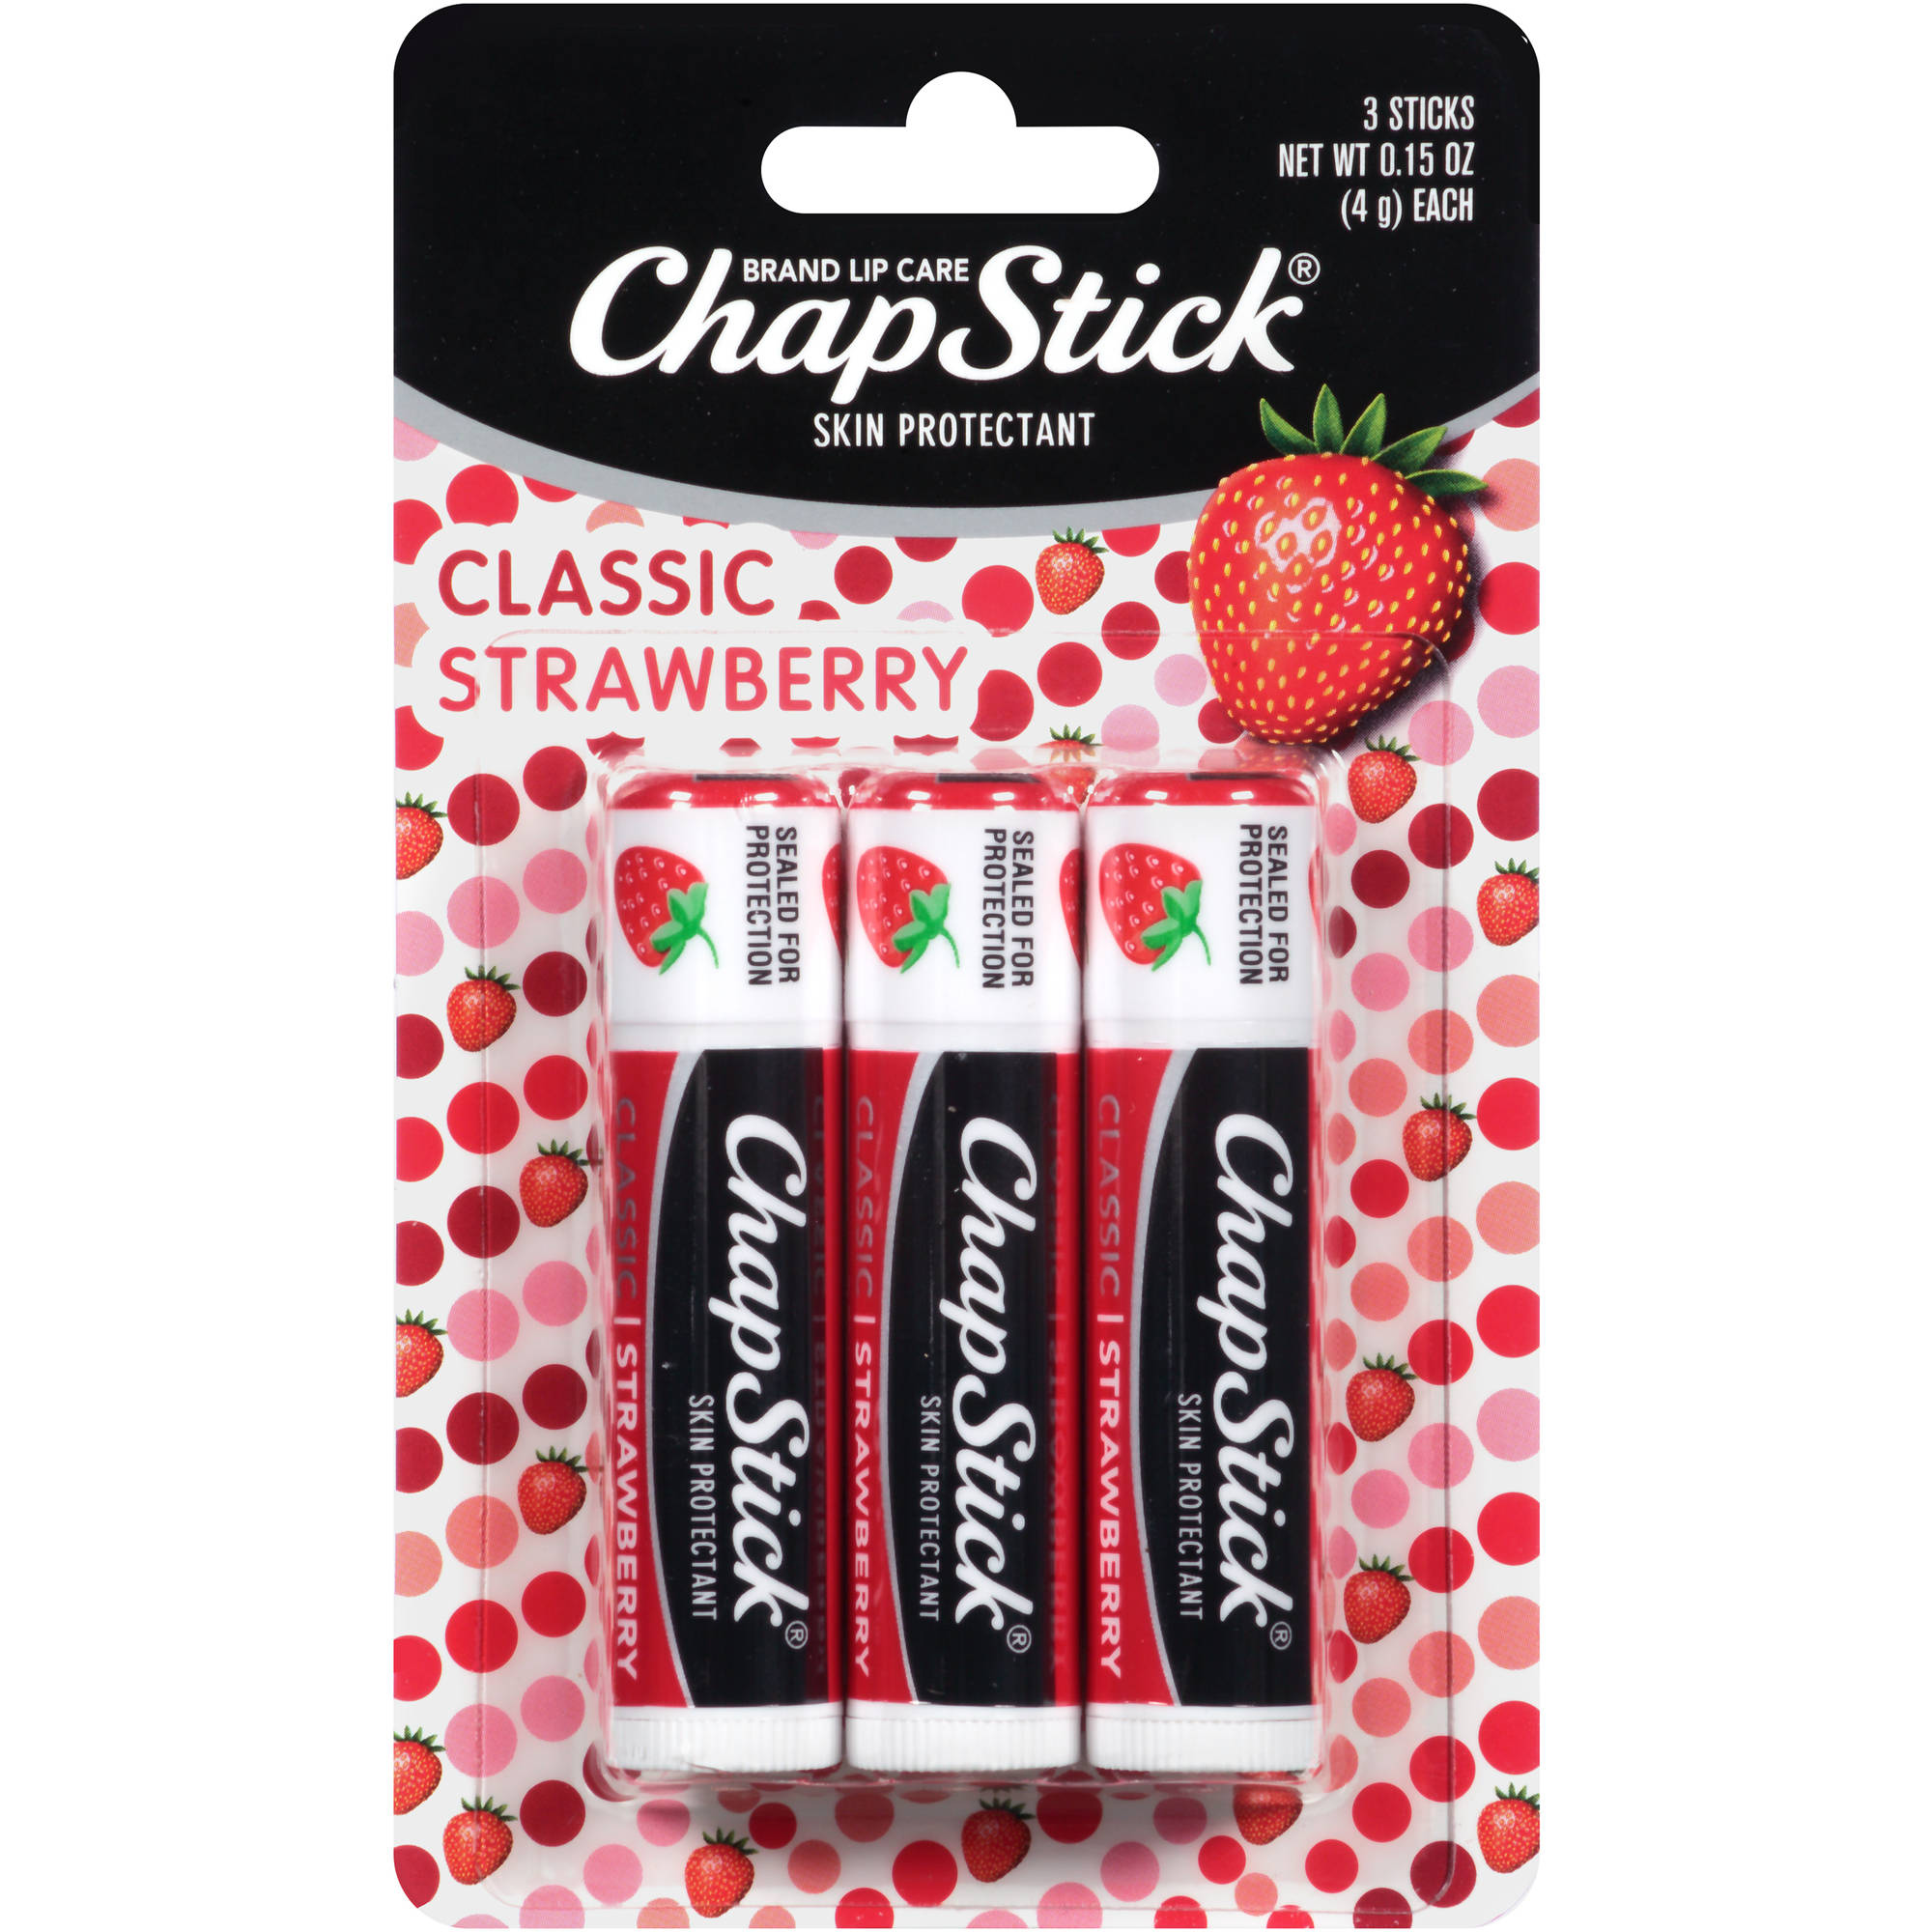 ChapStick Skin Protectant Lip Balm, Classic Strawberry, 0.15 oz, (Pack of 3)